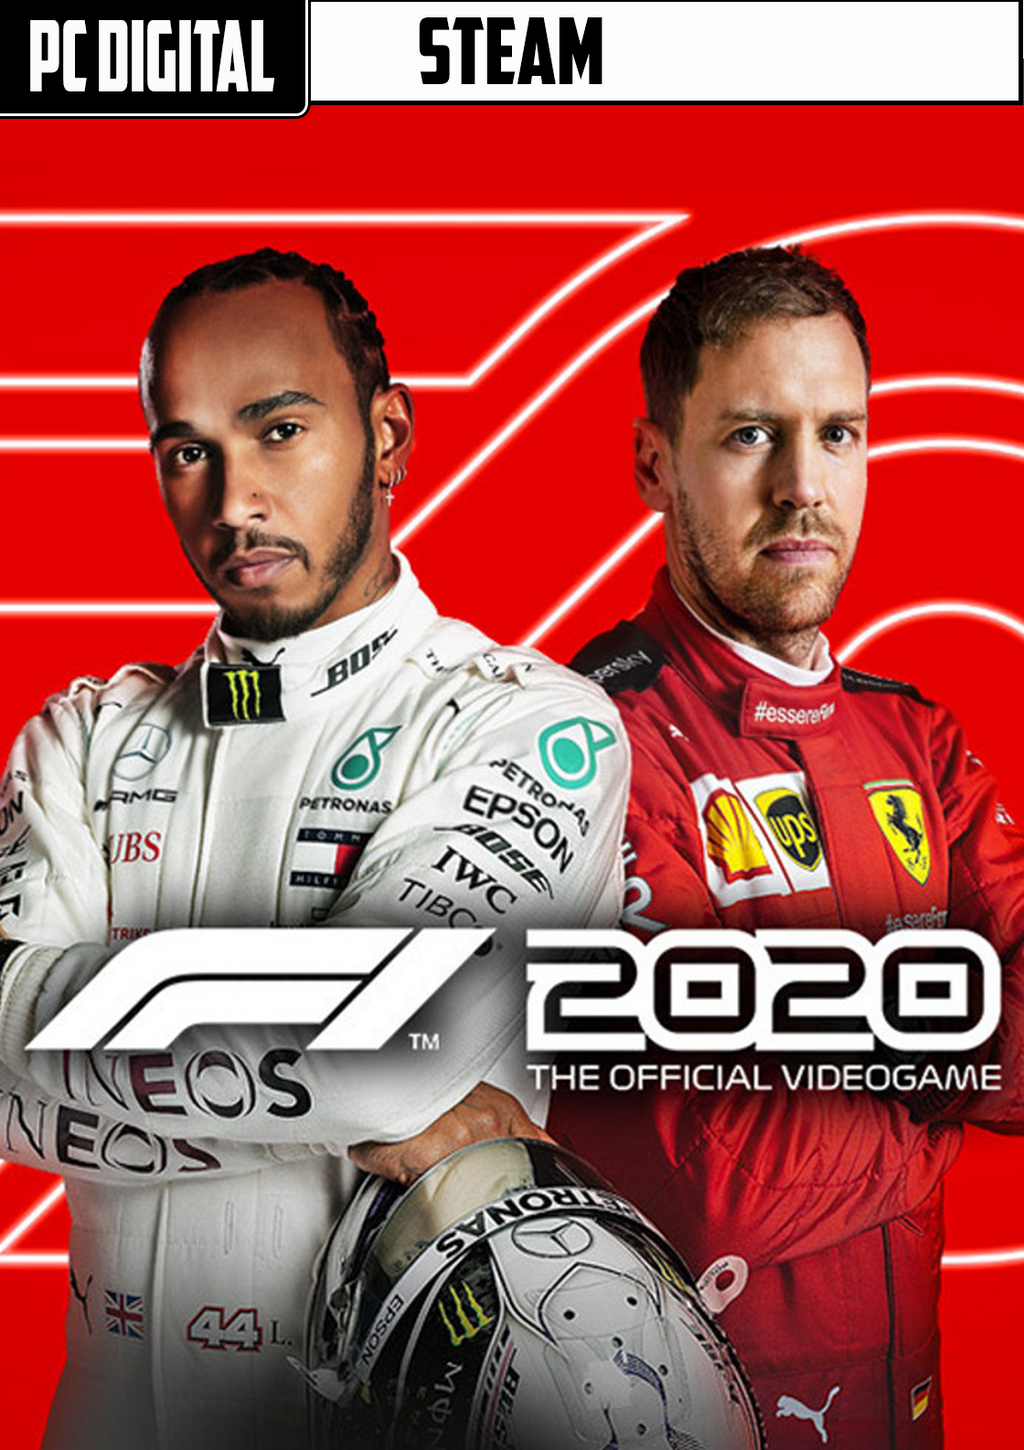 F1 2020 - Steam Key